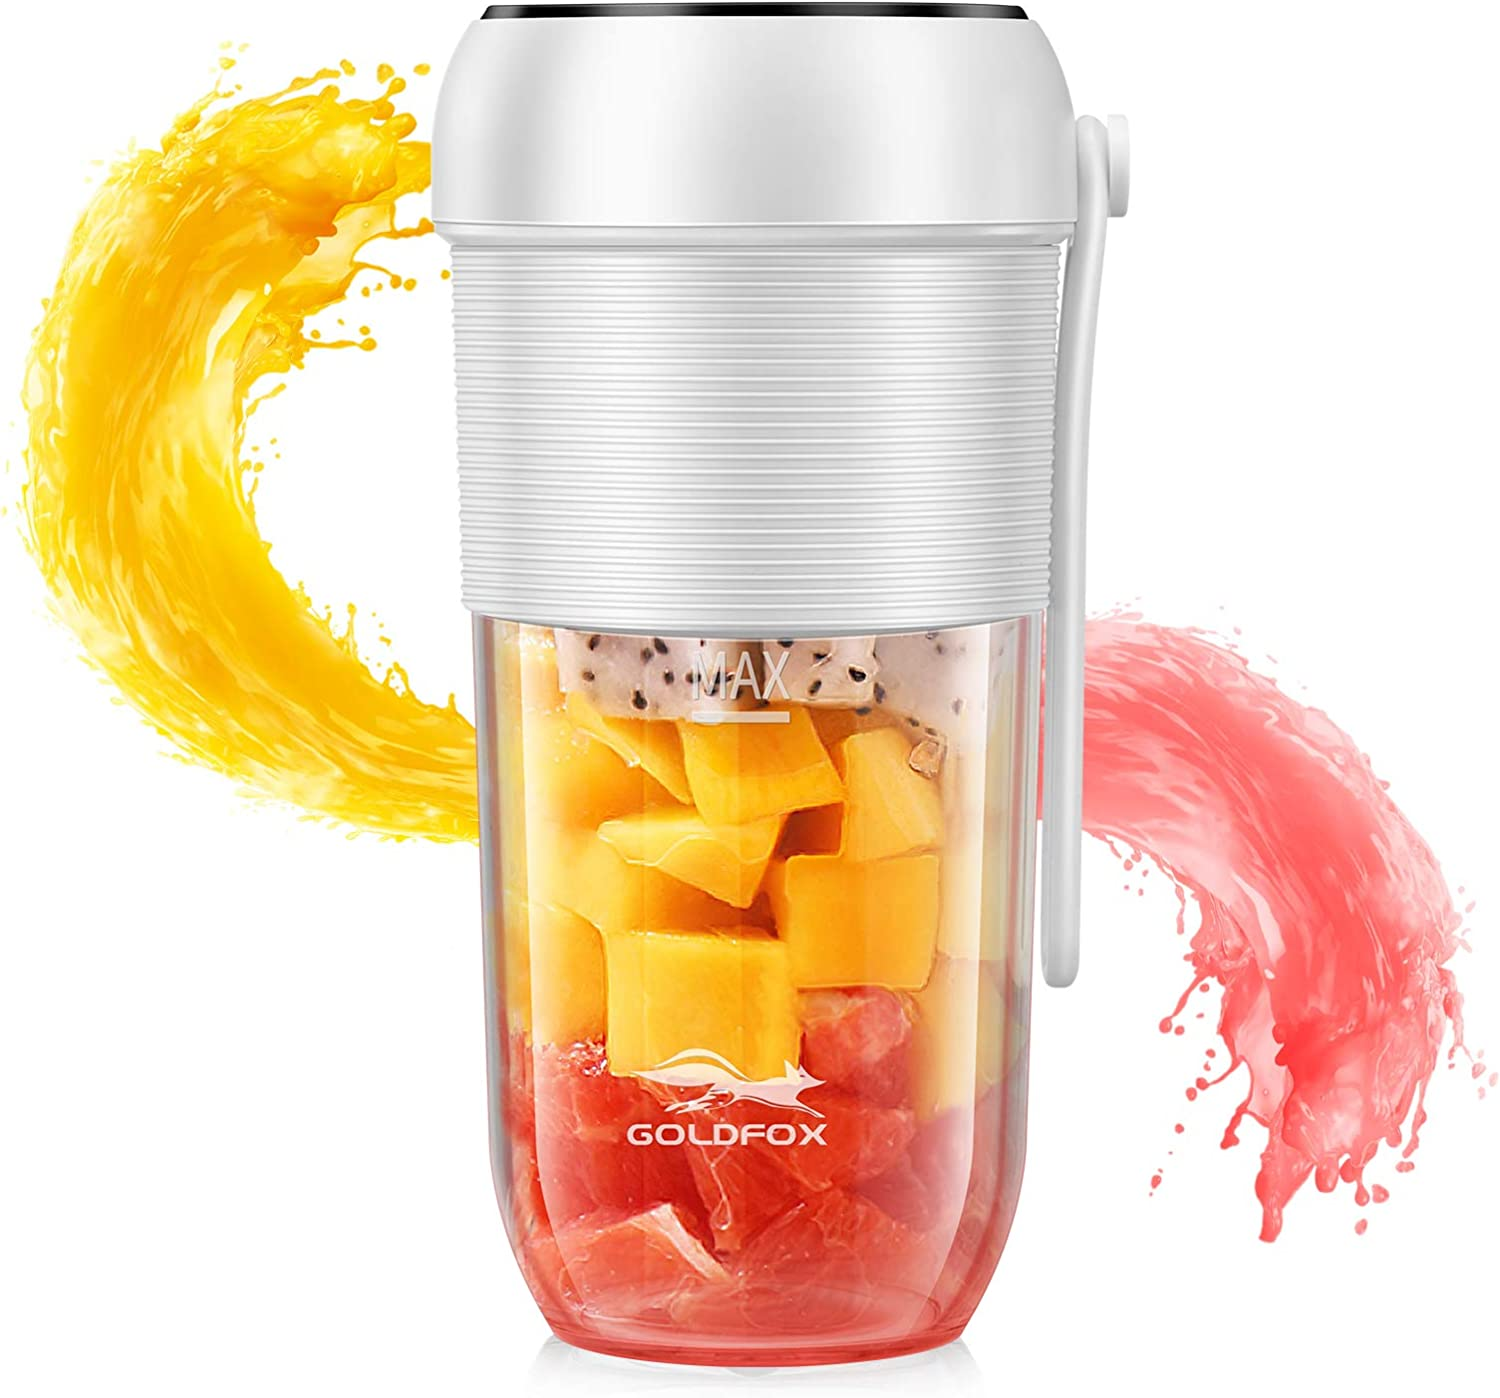 GOLDFOX Portable Blender, 350ML(11.84oz) Portable Blender Rechargeable Portable Blender for Shakes and Smoothies, Smoothie Blender for Kitcken,Gym,home,office and Travel